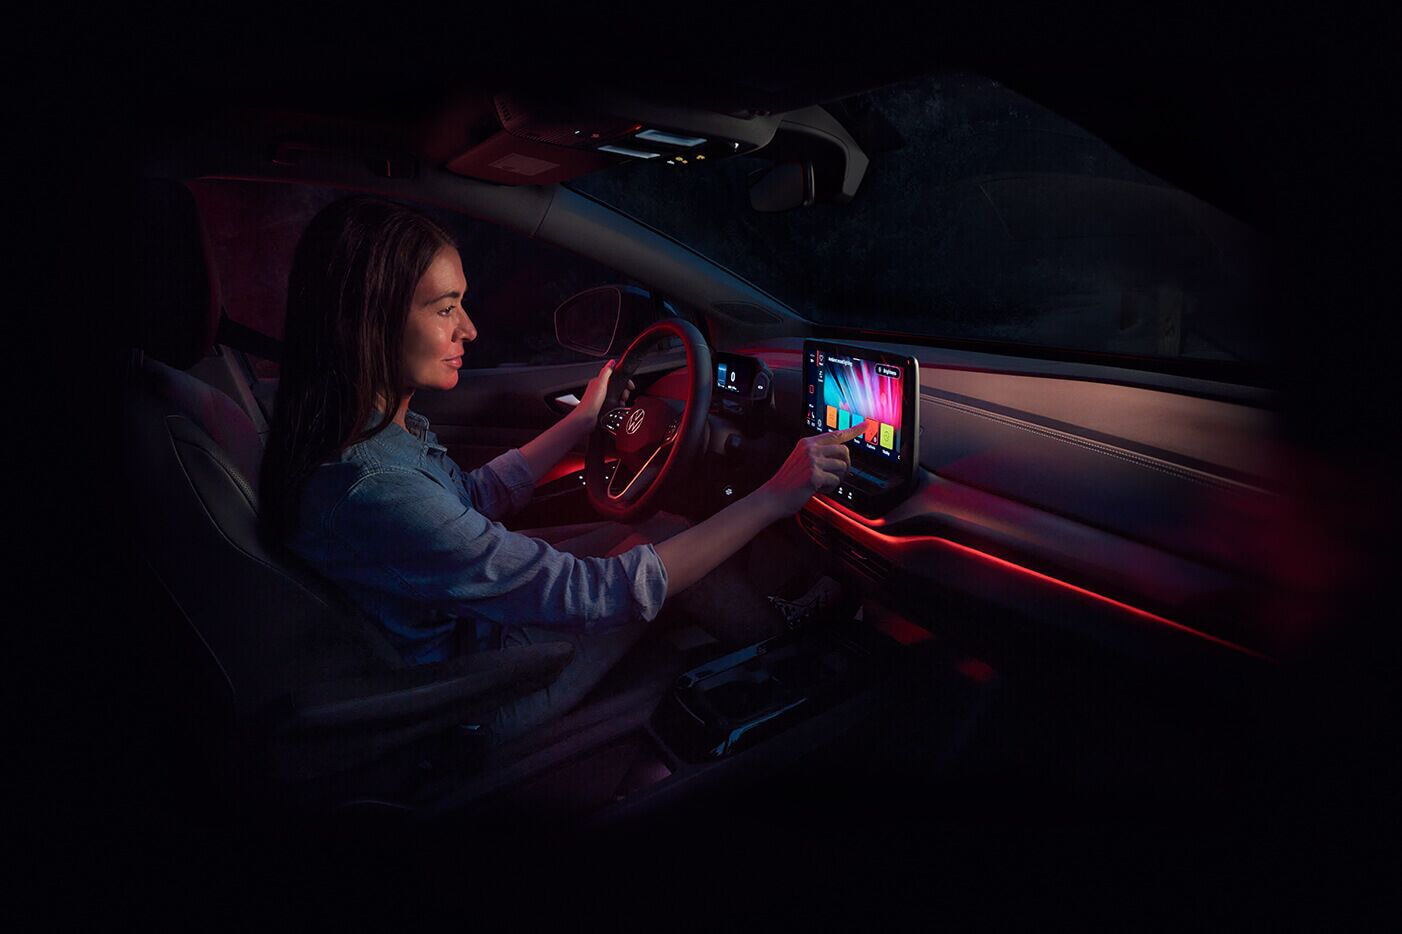 A woman adjusts the ambient lighting inside an ID.4.